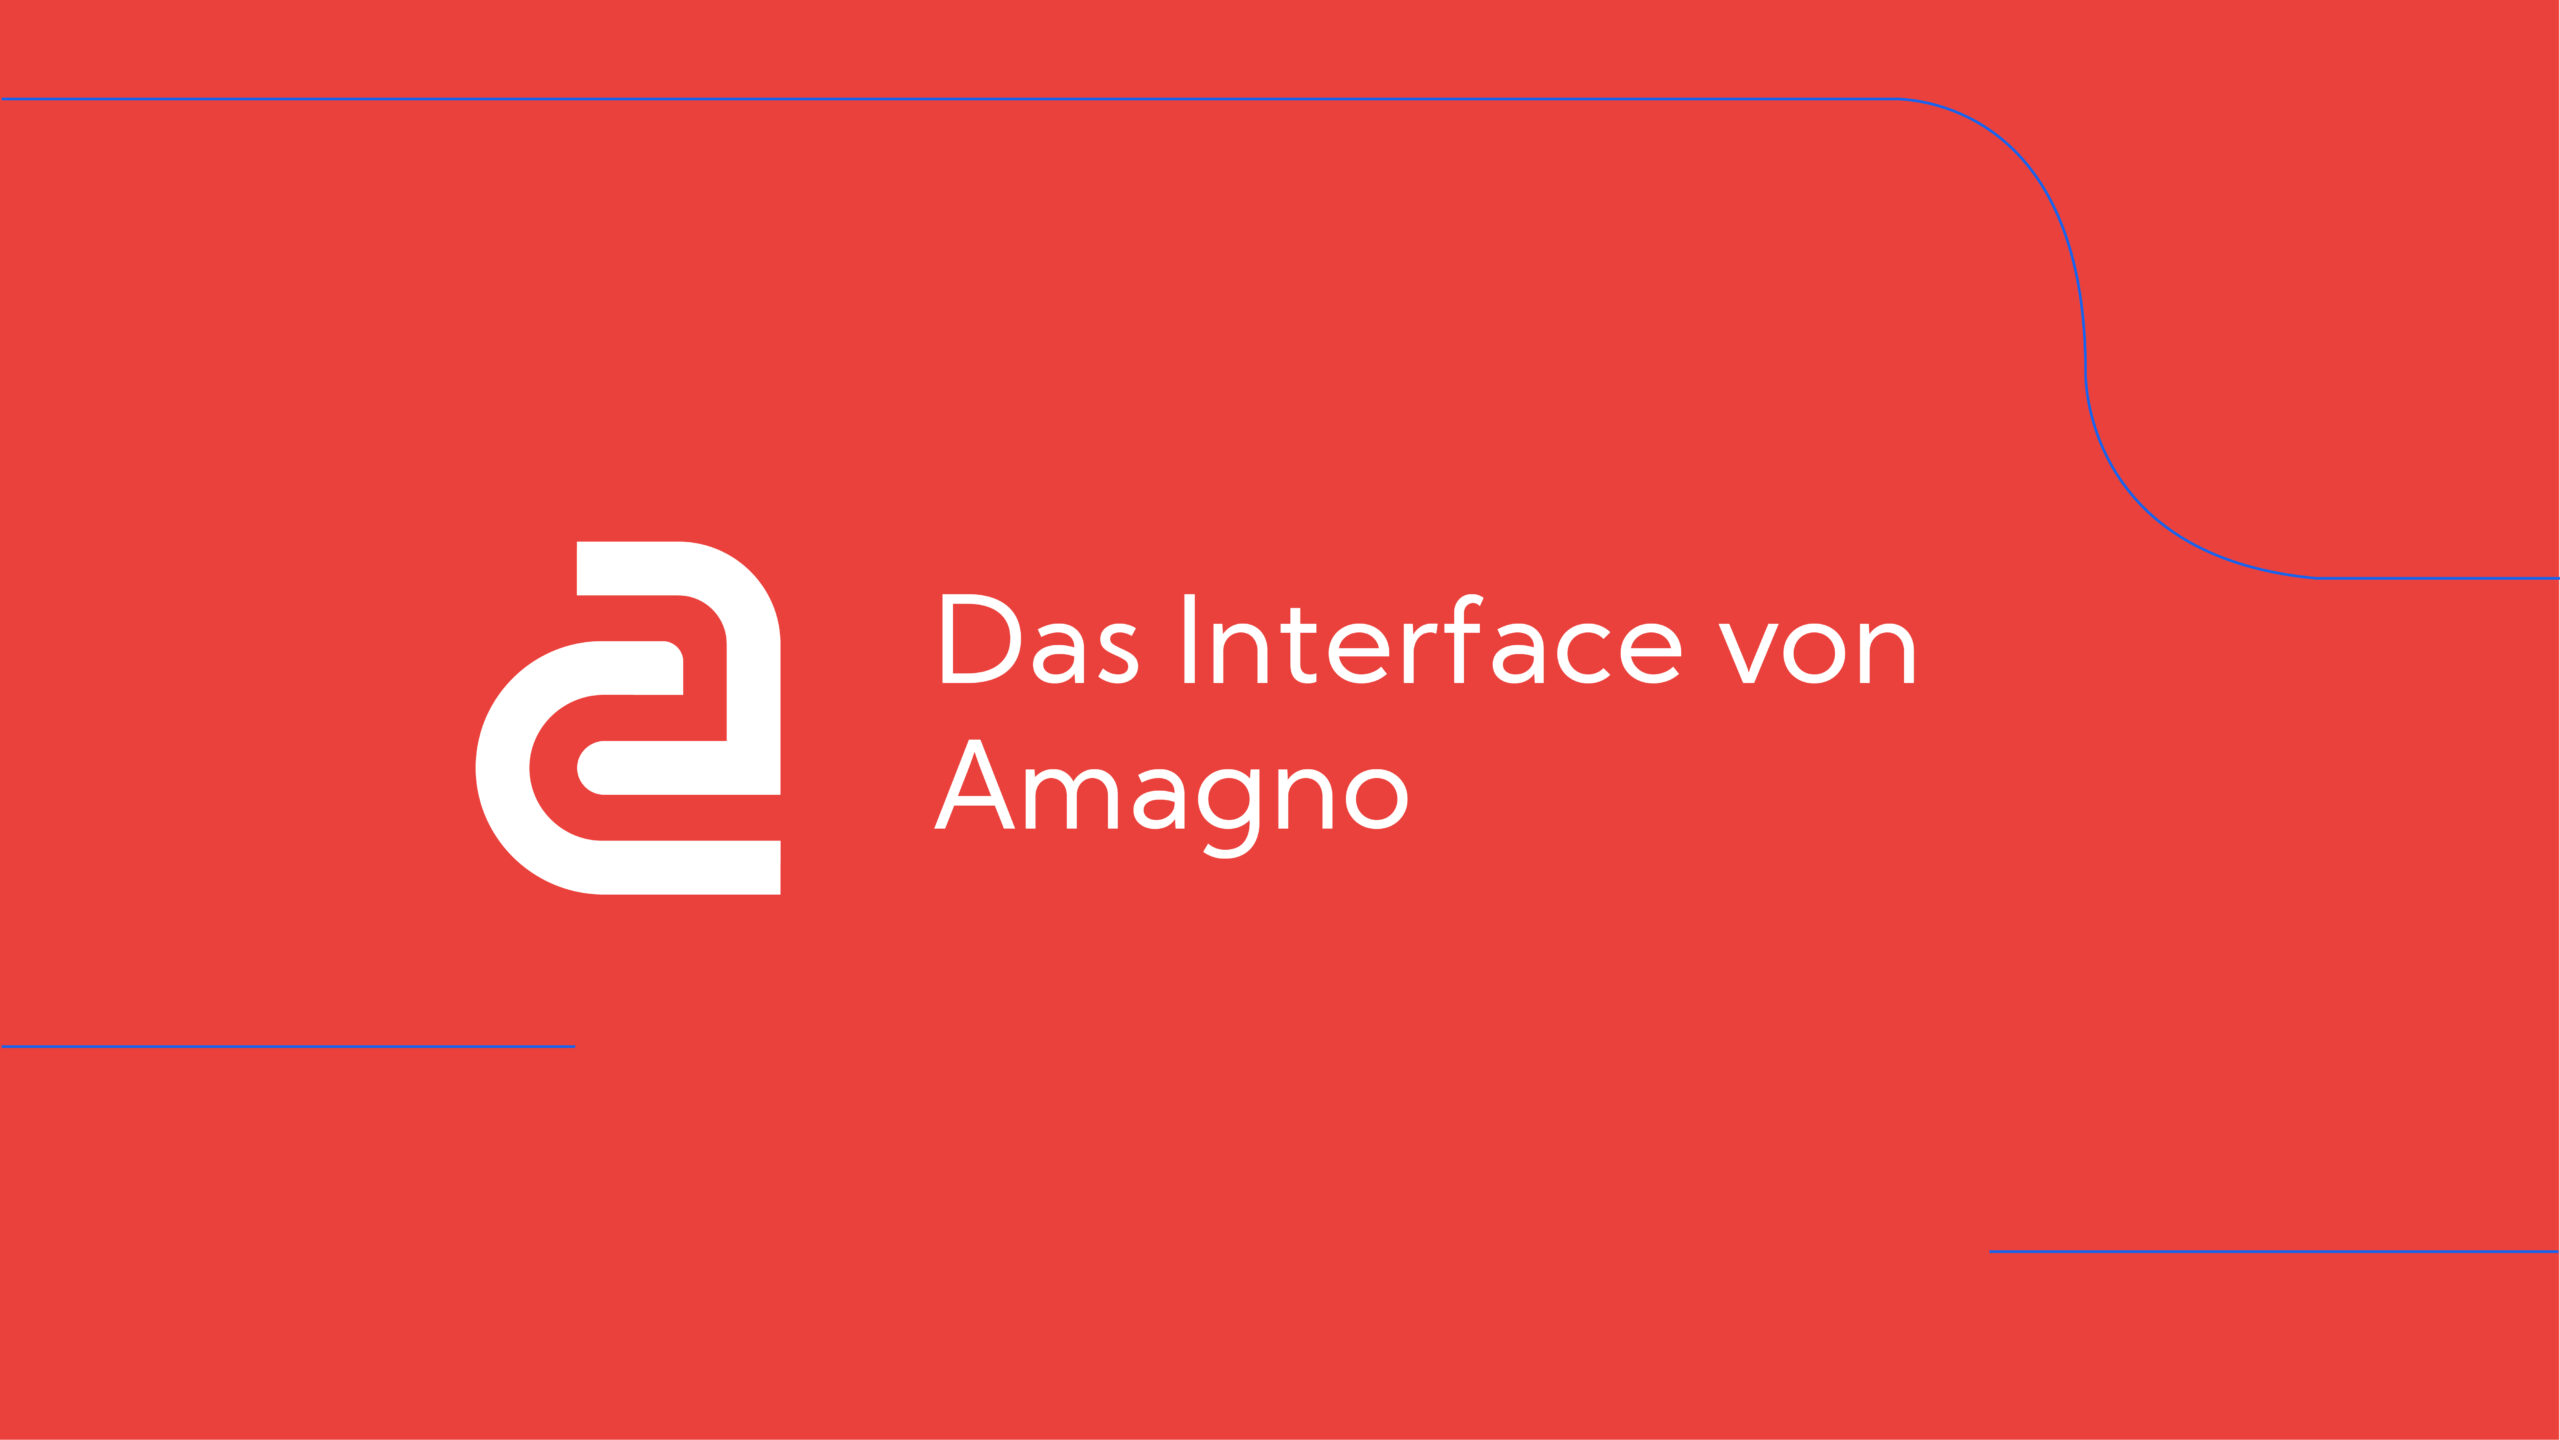 How-To: AMAGNO Basics – The Interface